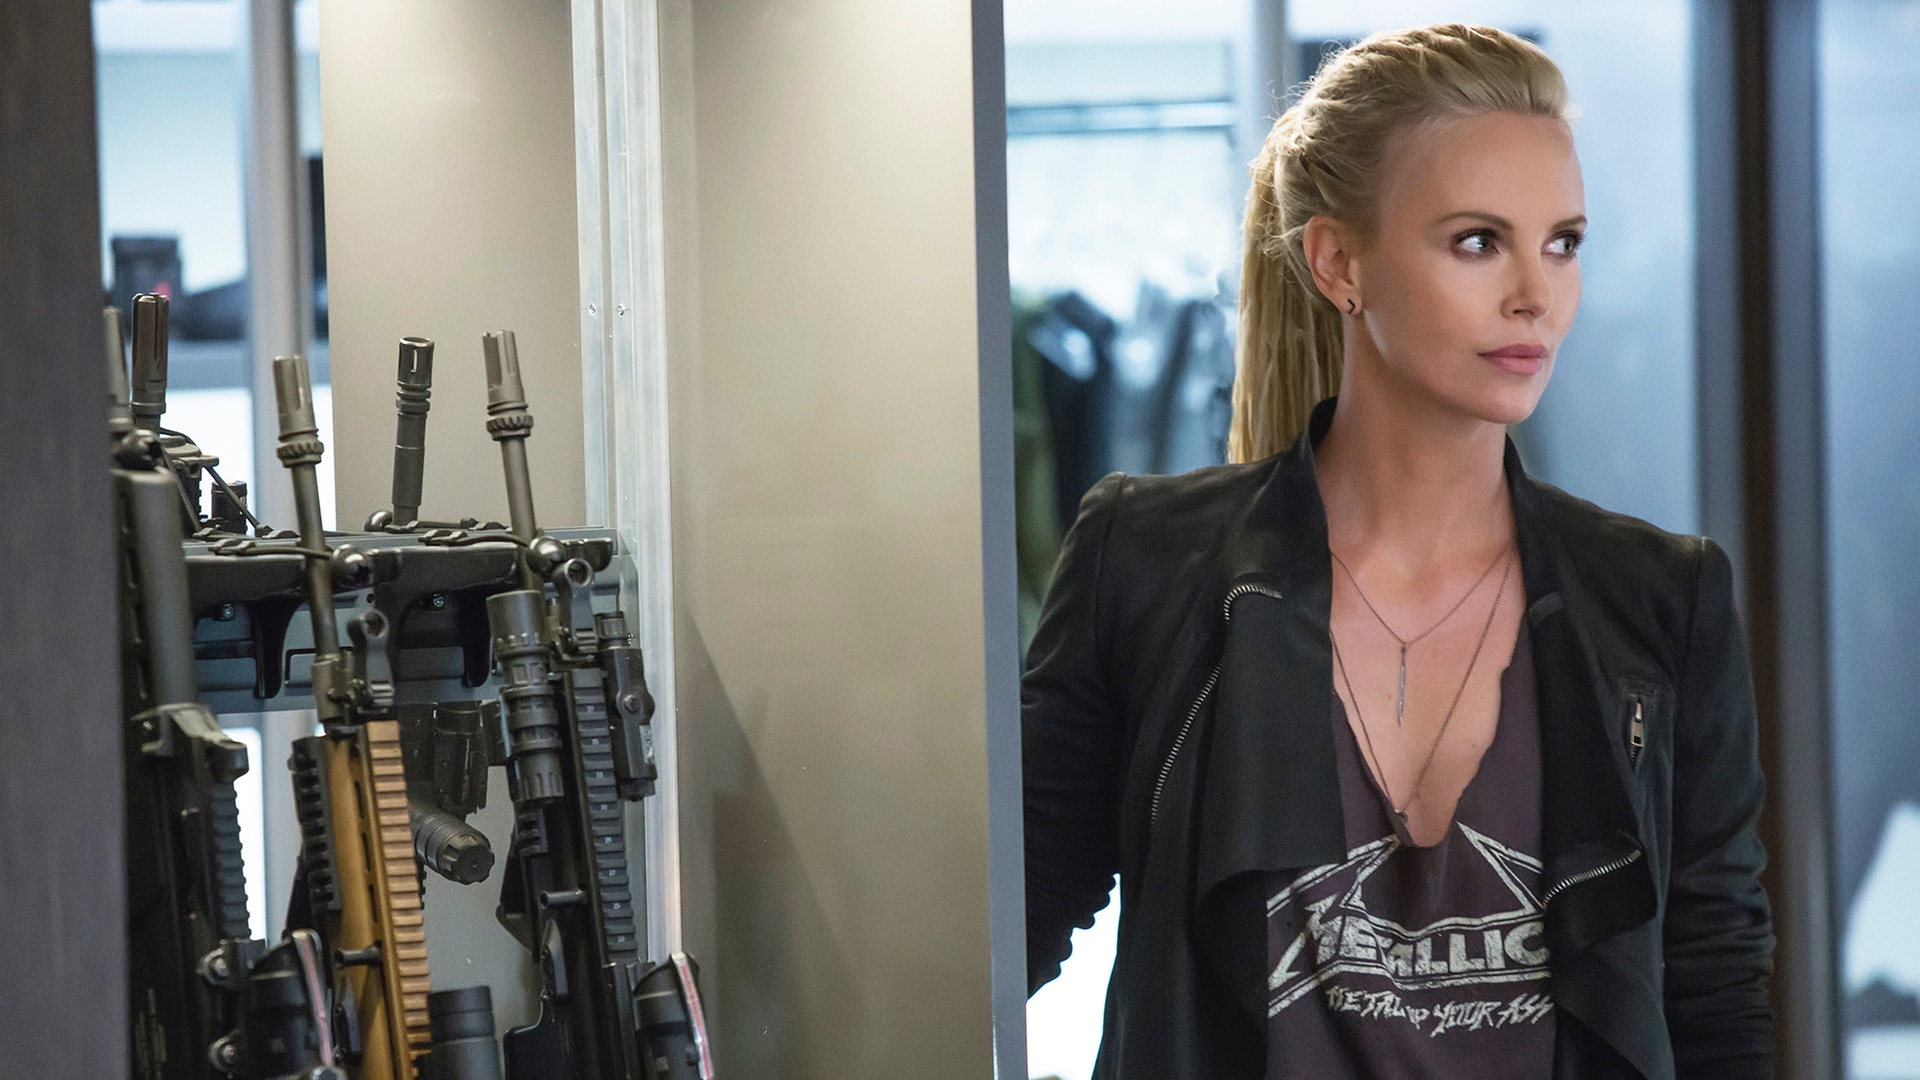 the-upcoming-female-led-fast-and-furious-spinoff-film-may-revolve-around-charlize-therons-character-cipher-soical.jpg